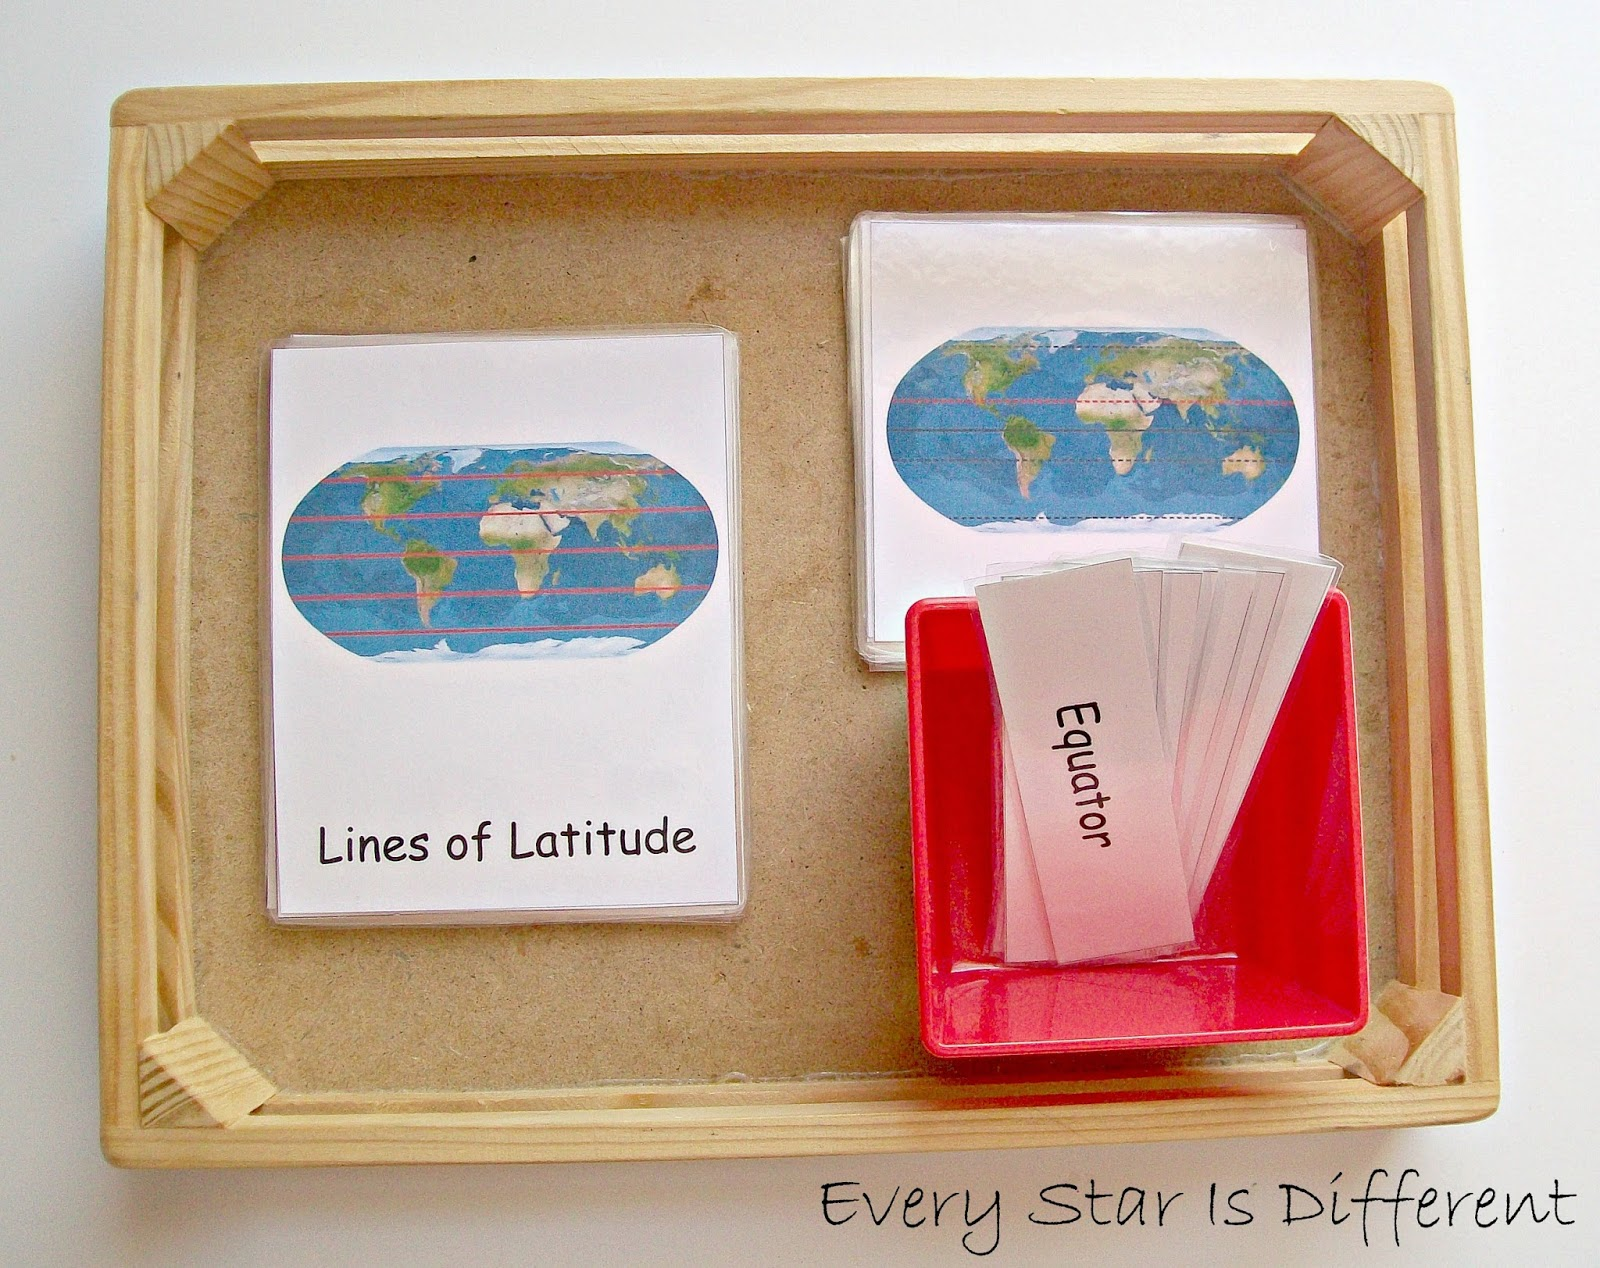 Lines of Latitude and Longitude Nomenclature Cards